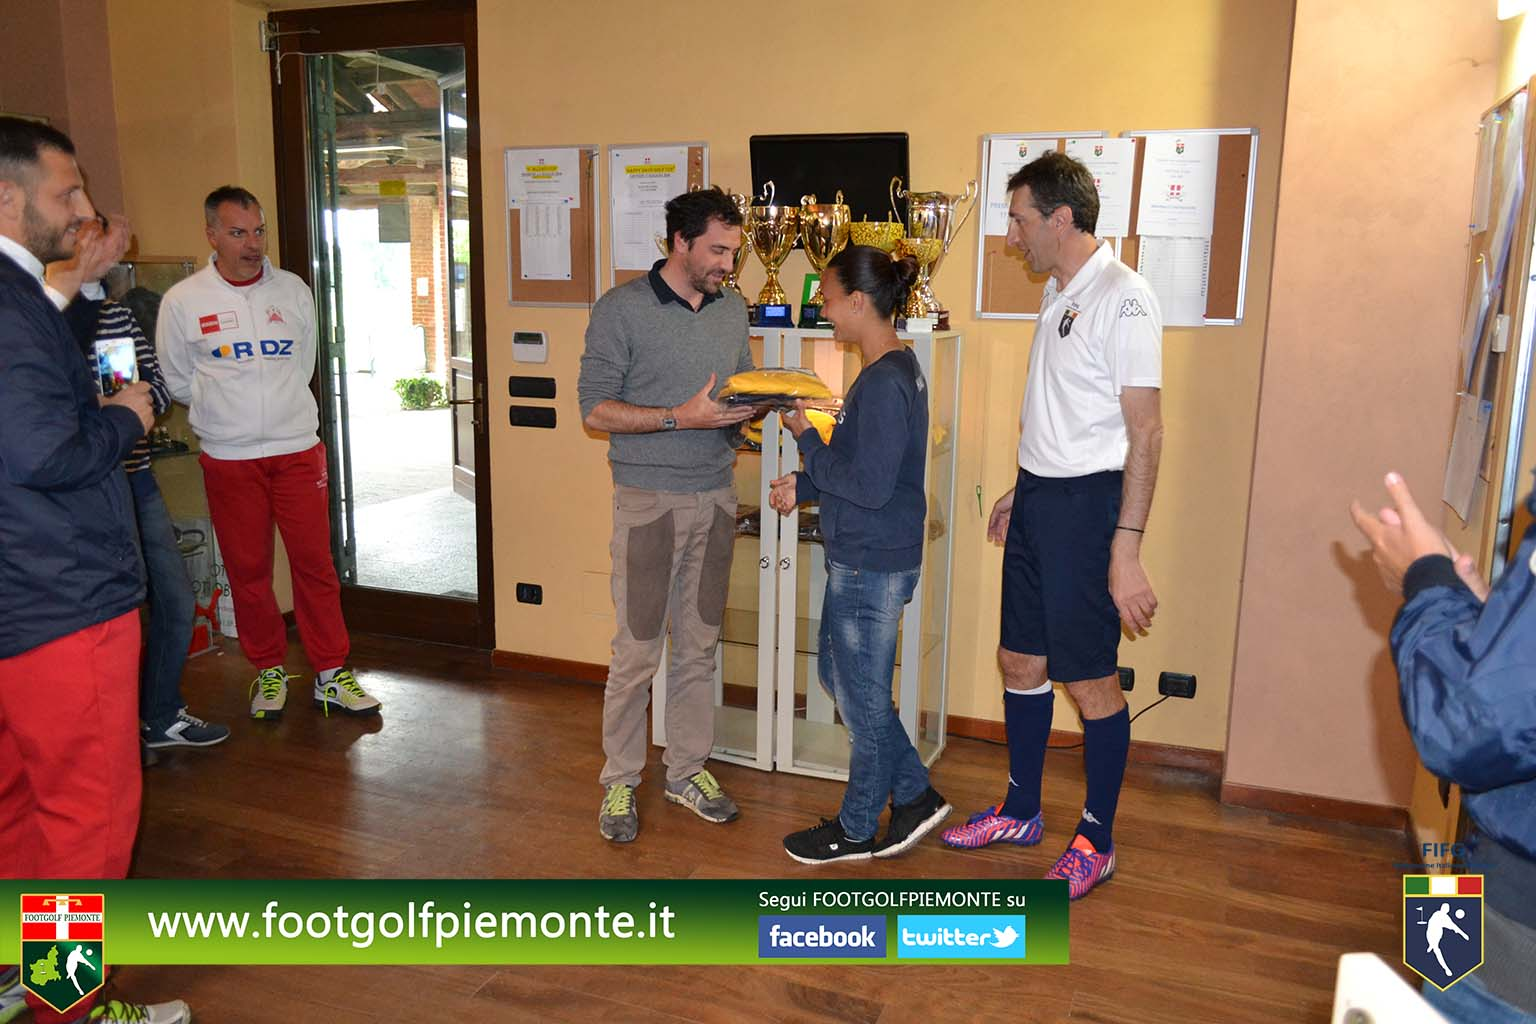 FOTO 9 Regions' Cup Footgolf Piemonte 2016 Golf Città di Asti (At) 30apr16-106